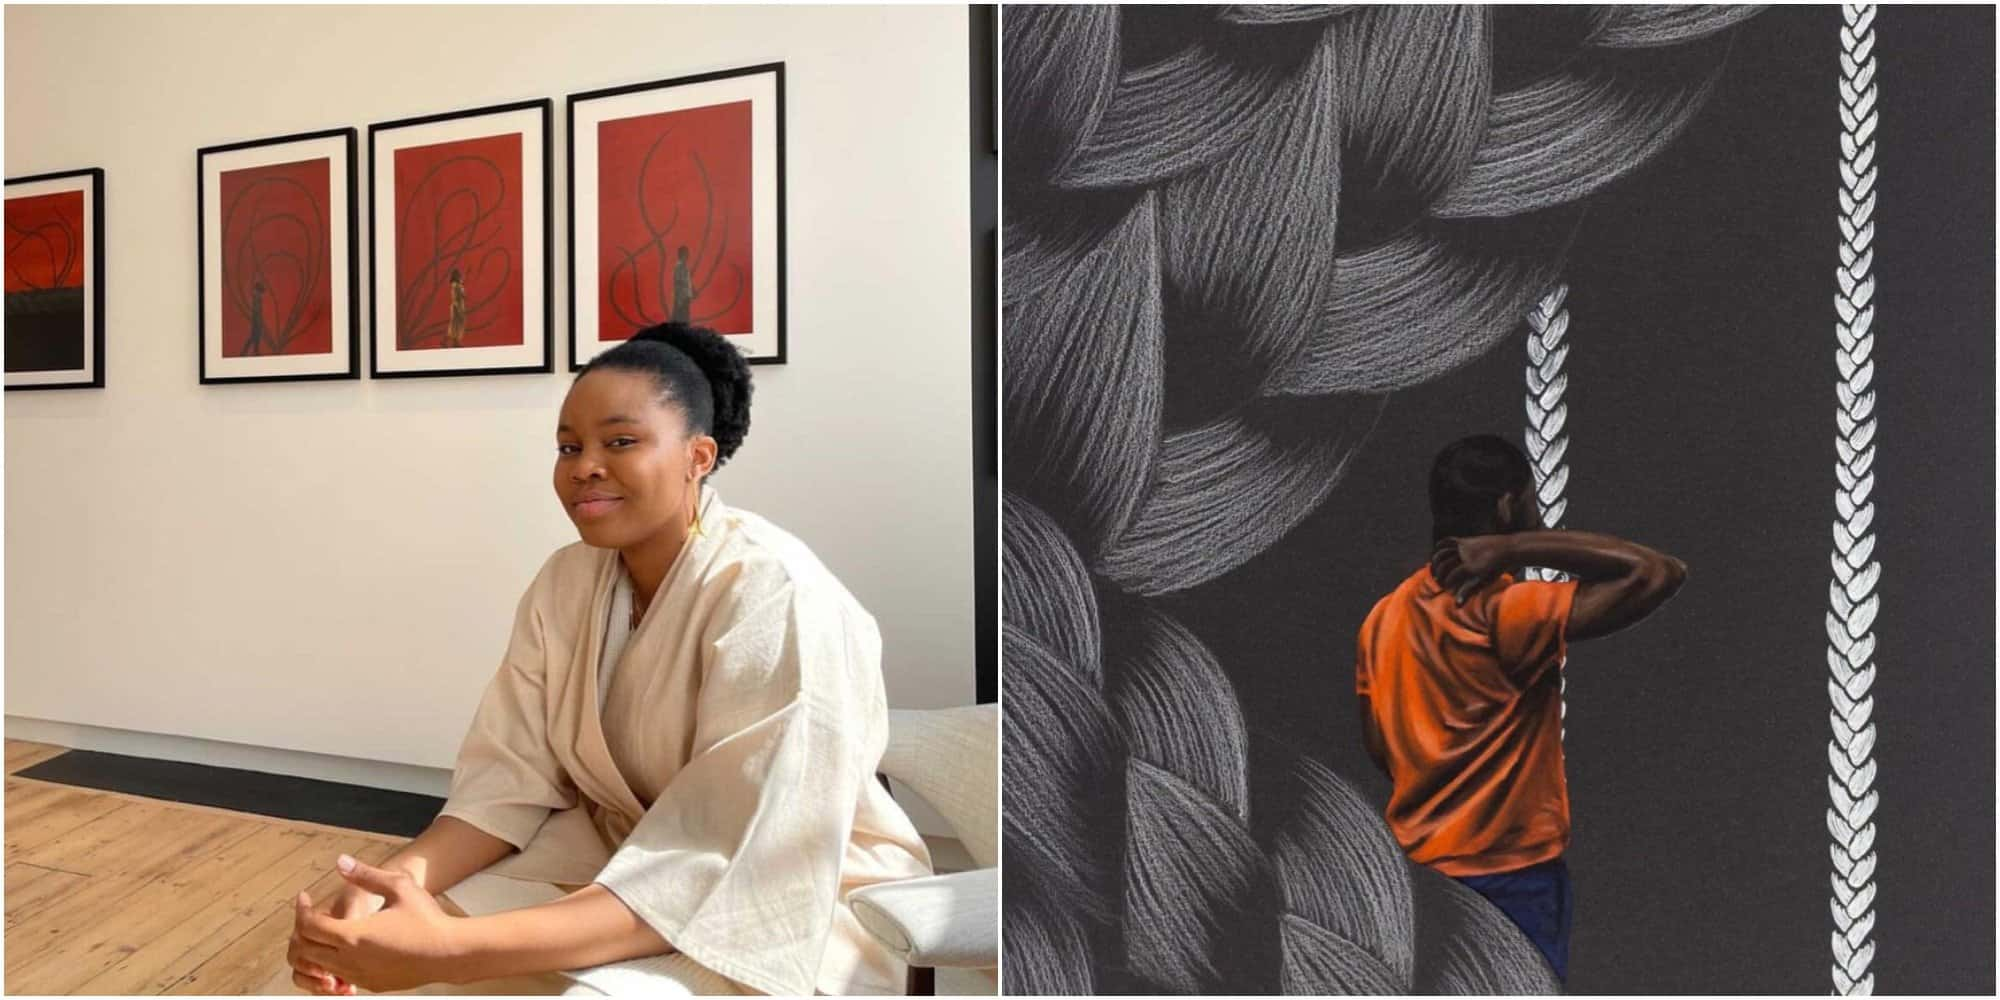 For The Girls: Meet Bunmi Agusto, the Artist Behind The Surrealist Wonderland 'Escape to Within'